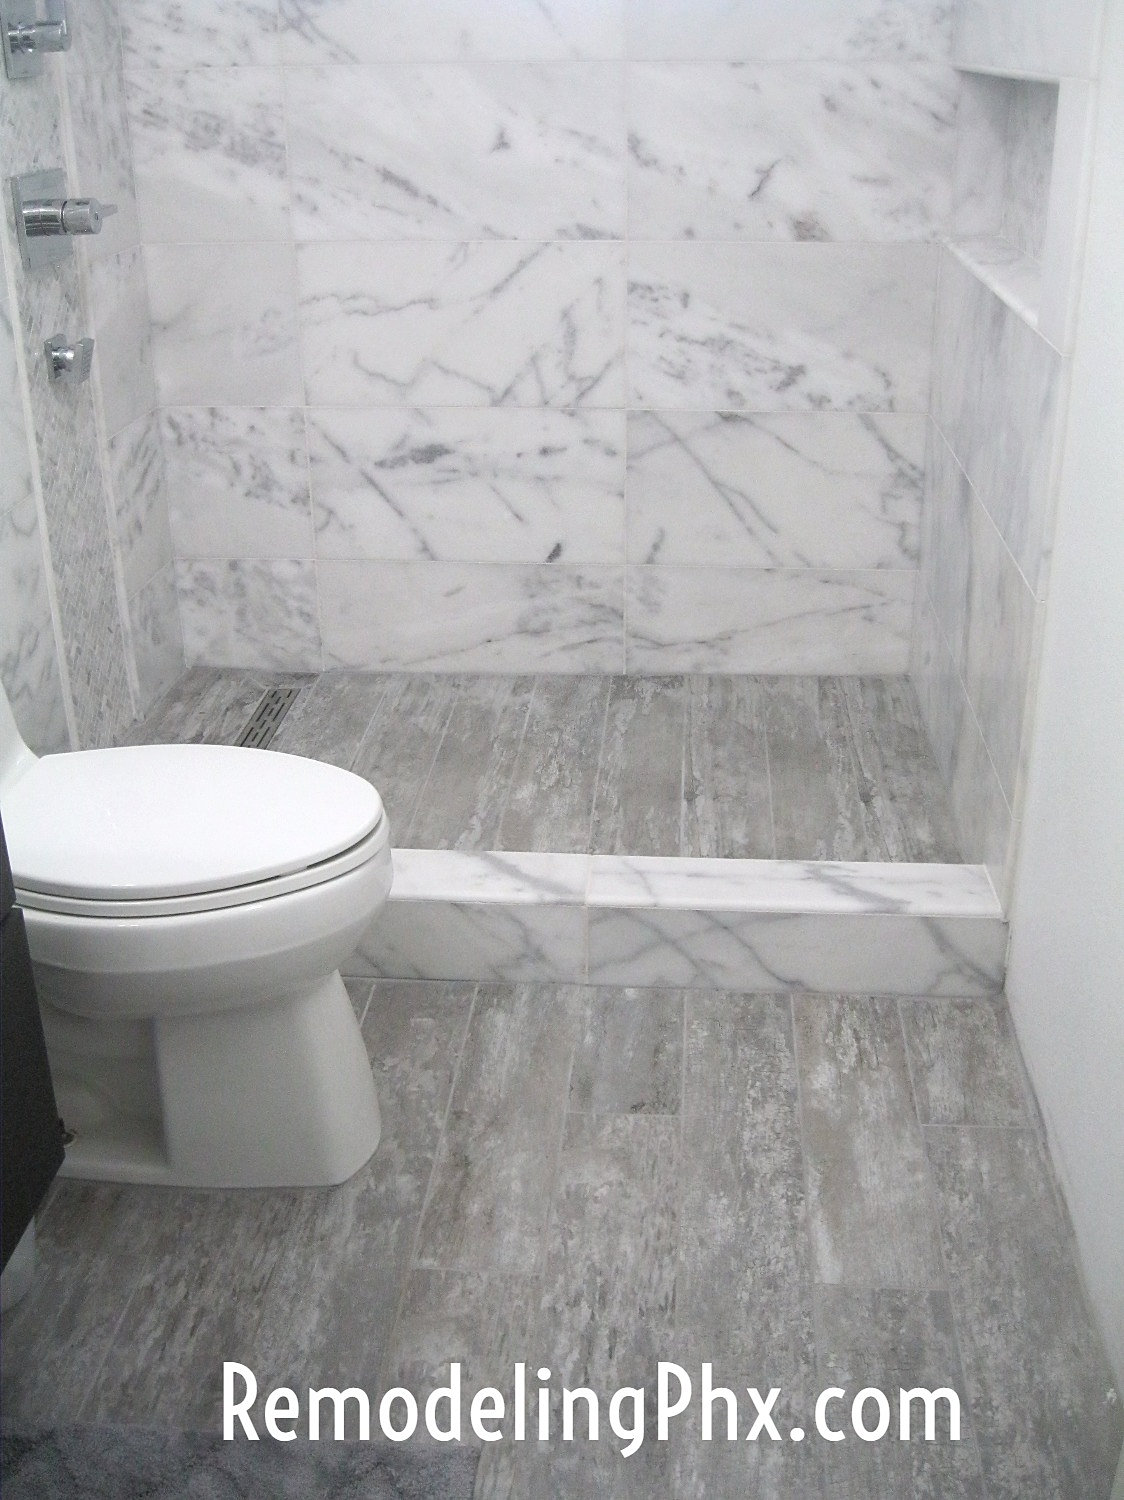 Carrara Marble Shower Remodel. Bathroom and Shower Remodeling Contractor in AZ